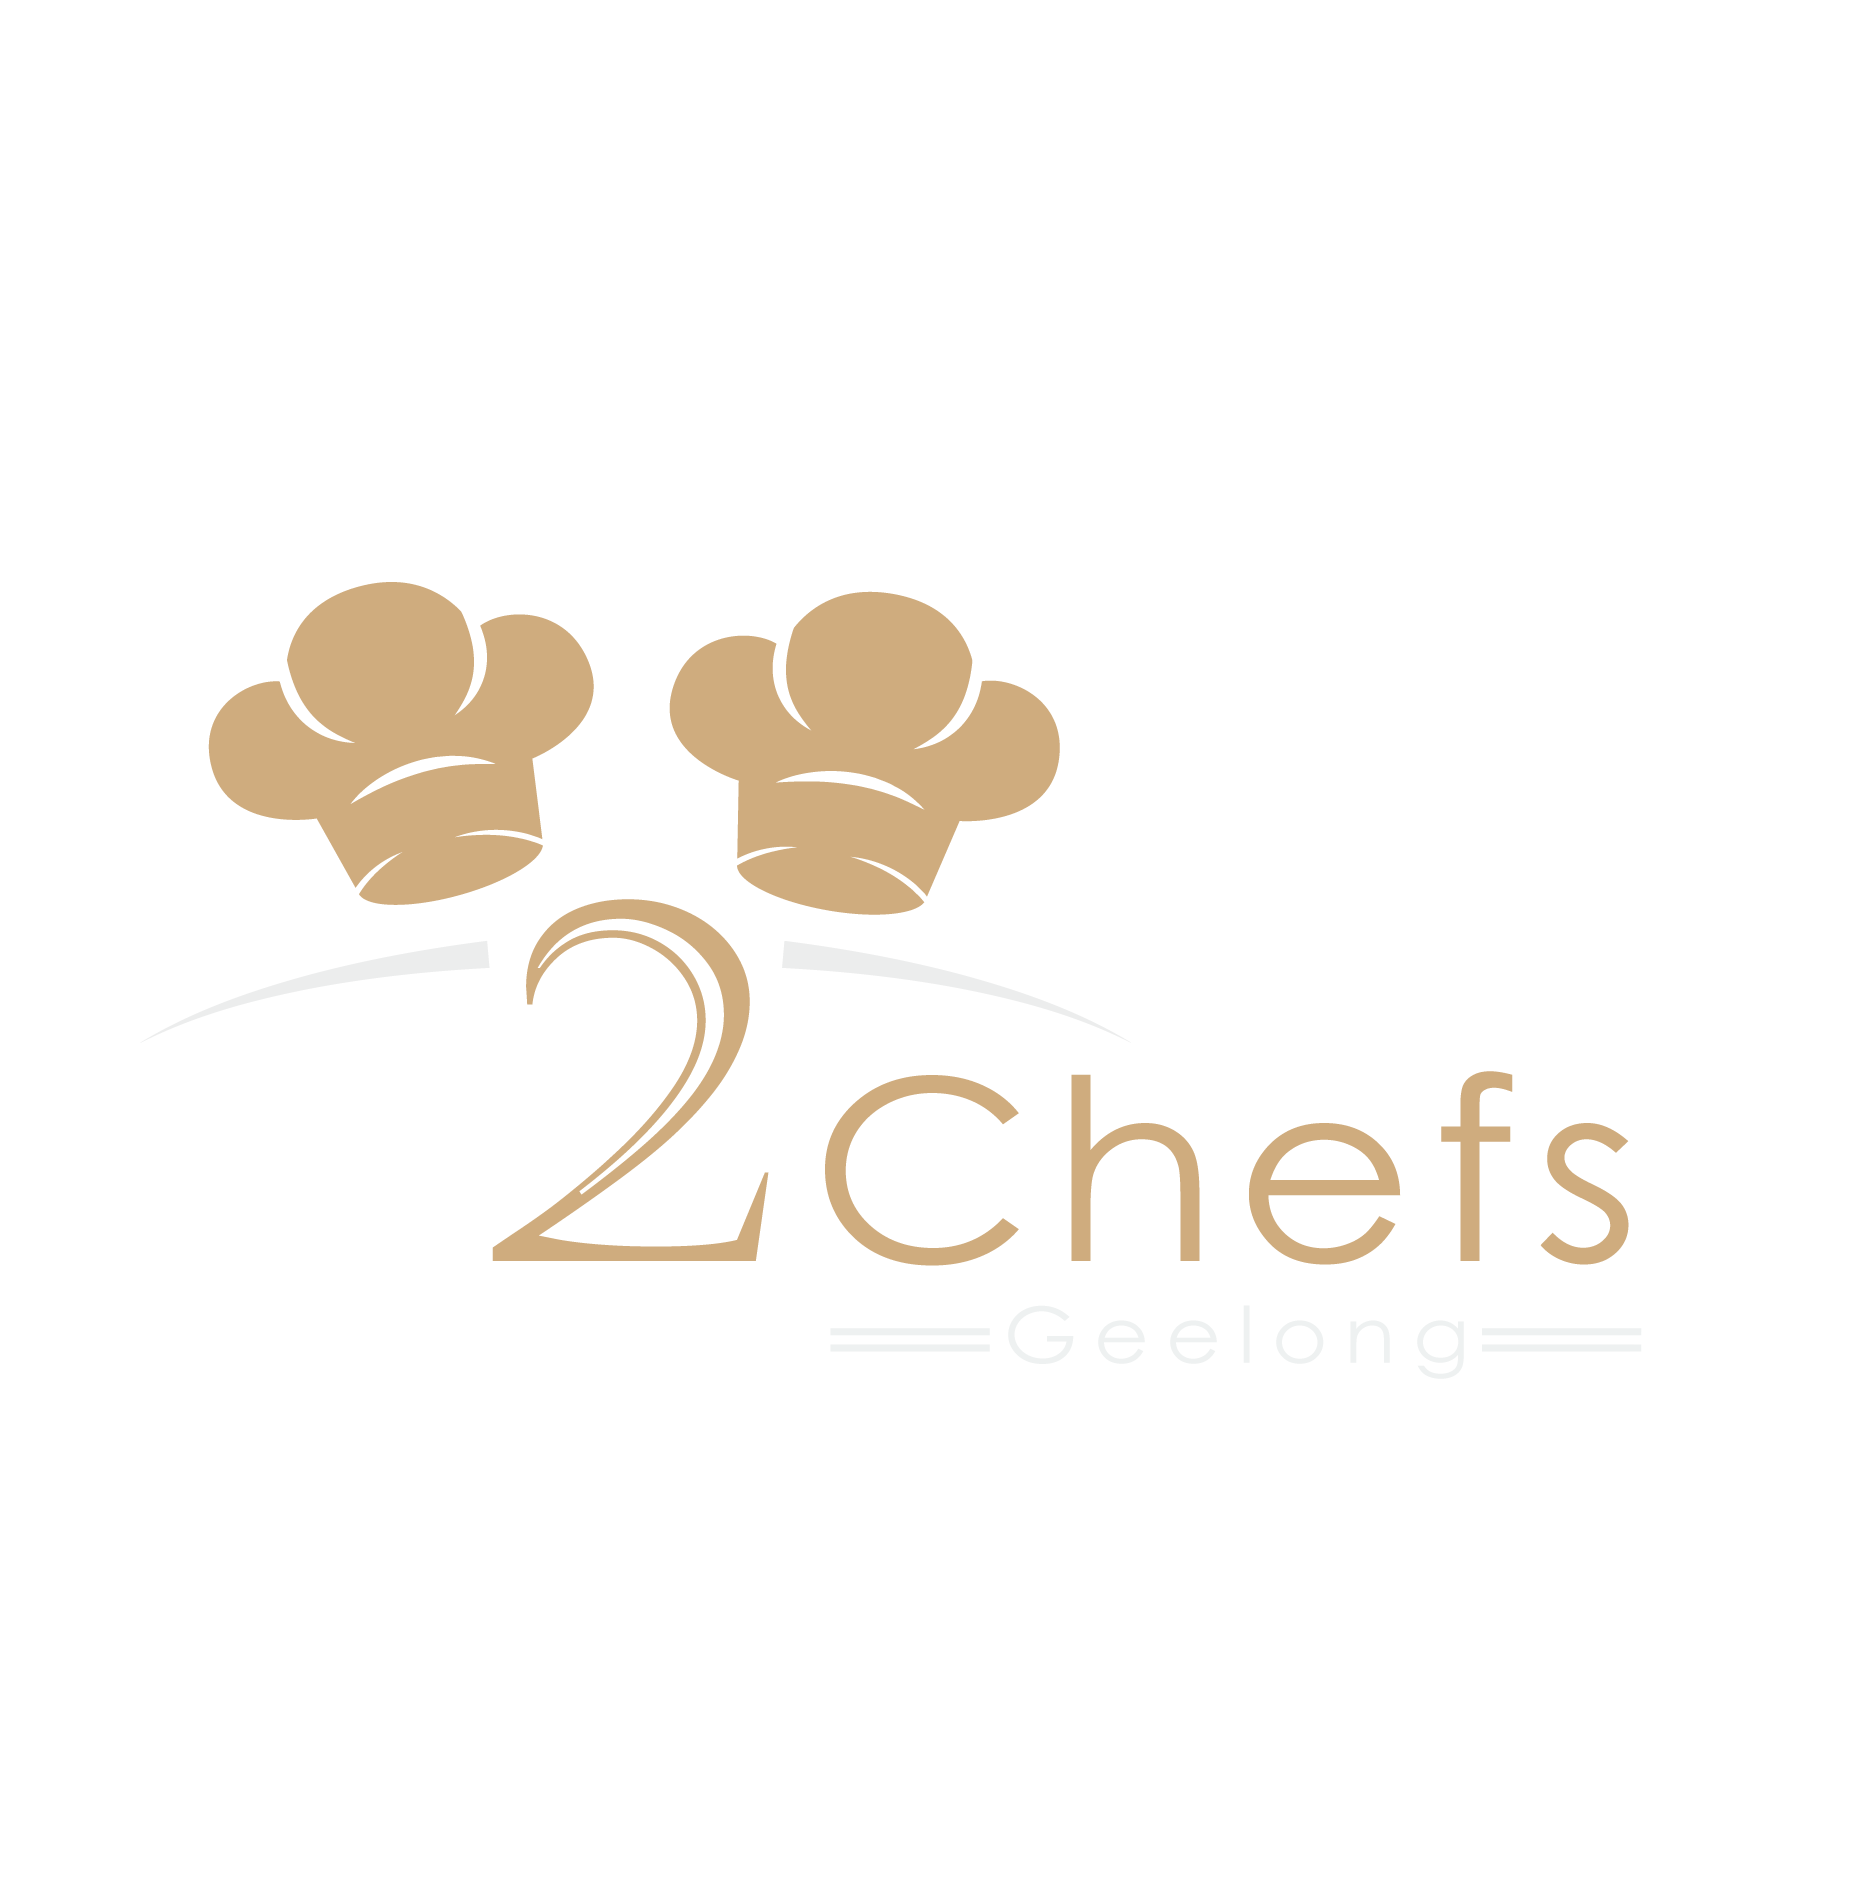 best restaurants geelong logo